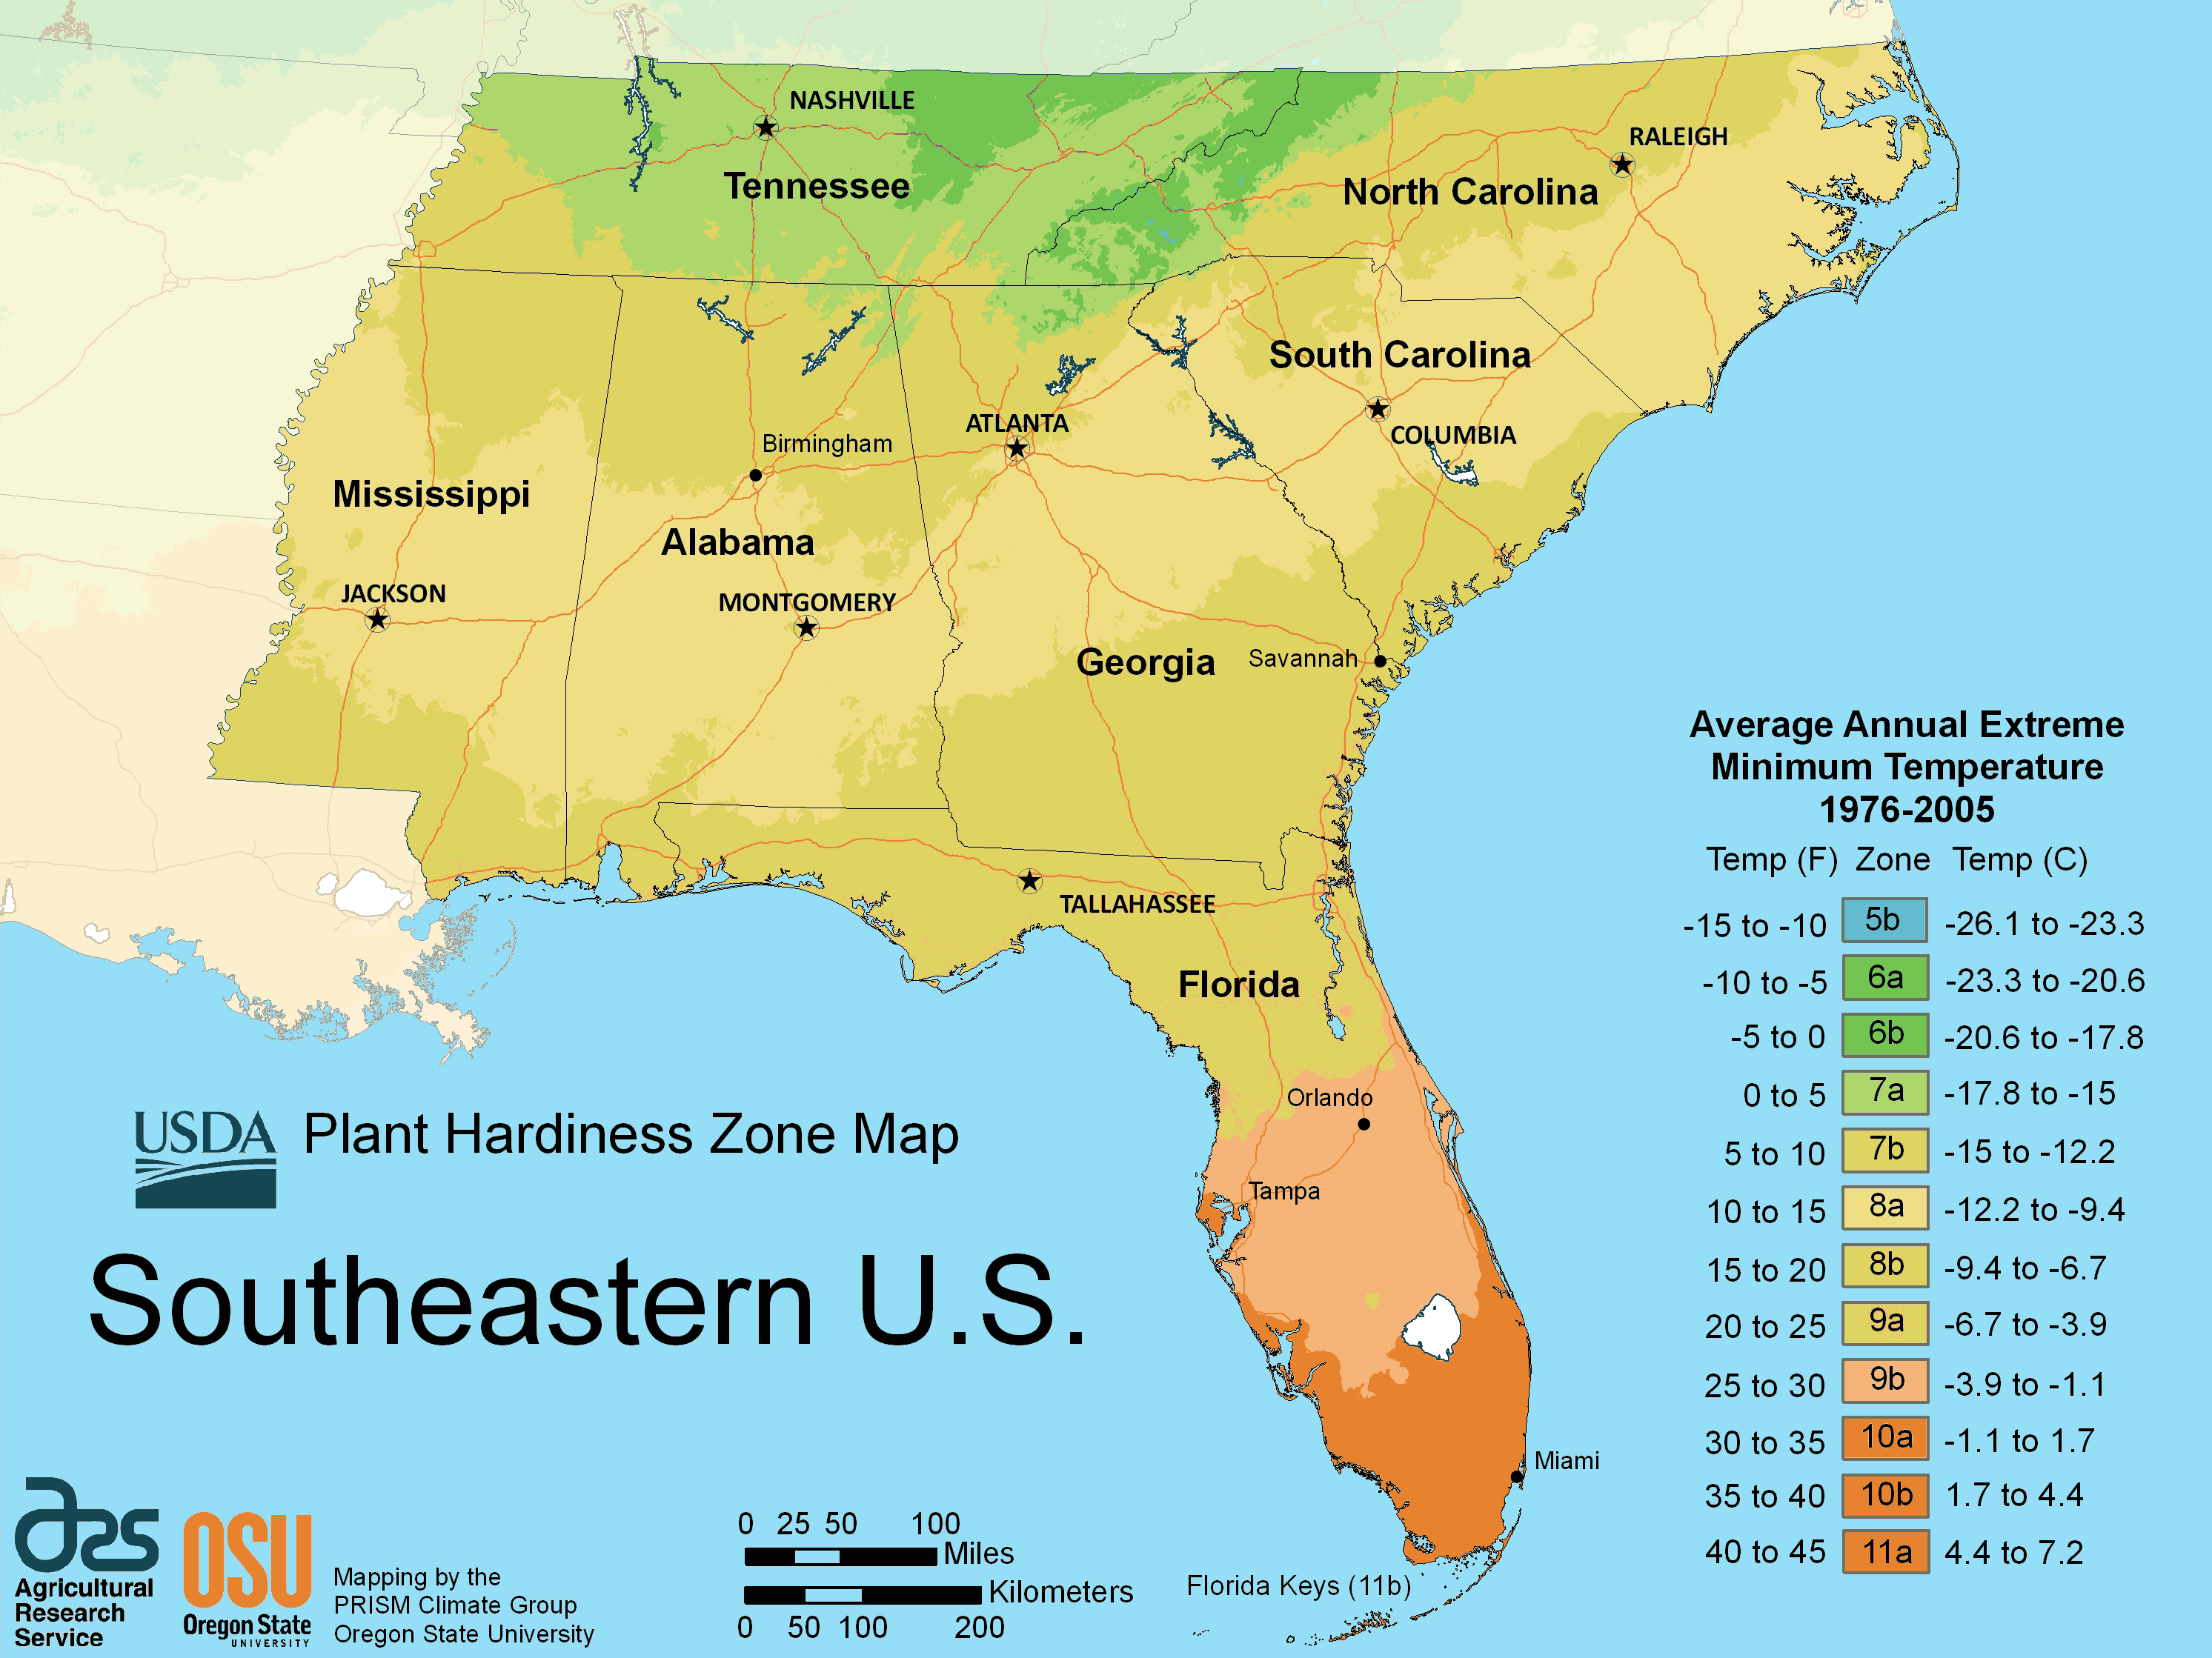 Us Map South East South East Us Plant Hardiness Zone Map   Mapsof.Net